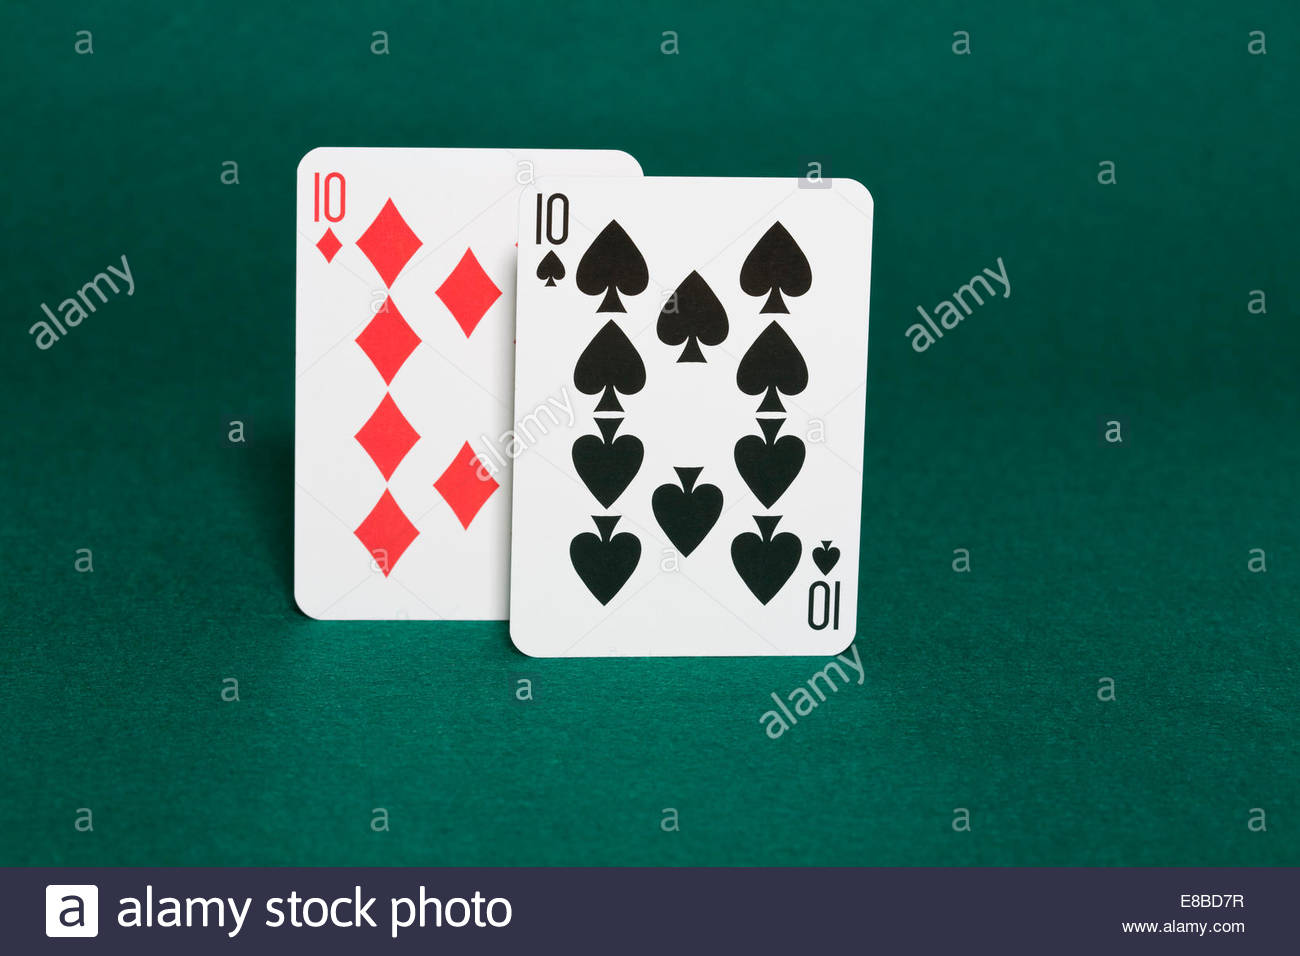 Closeup of pocket tens starting hand in hold'em poker also called dimes in horizontal view - Stock Image